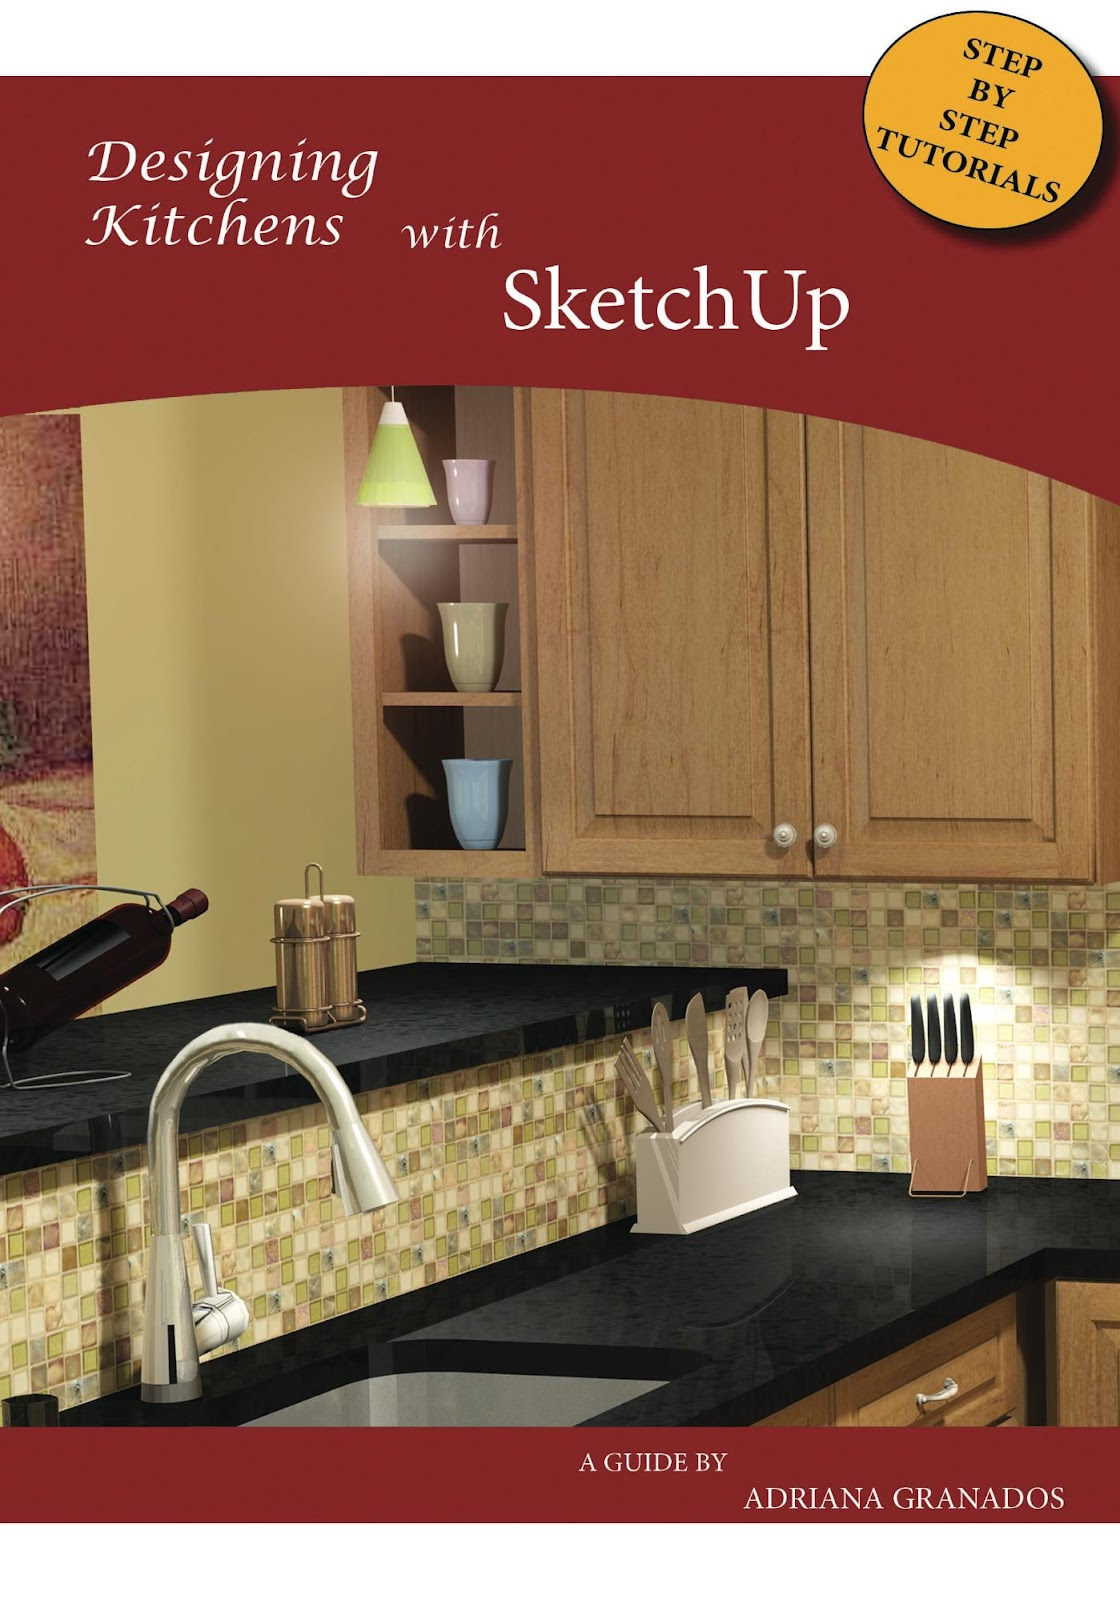 Attractive Designing Kitchens With SketchUp, A New Book For Interior Designers